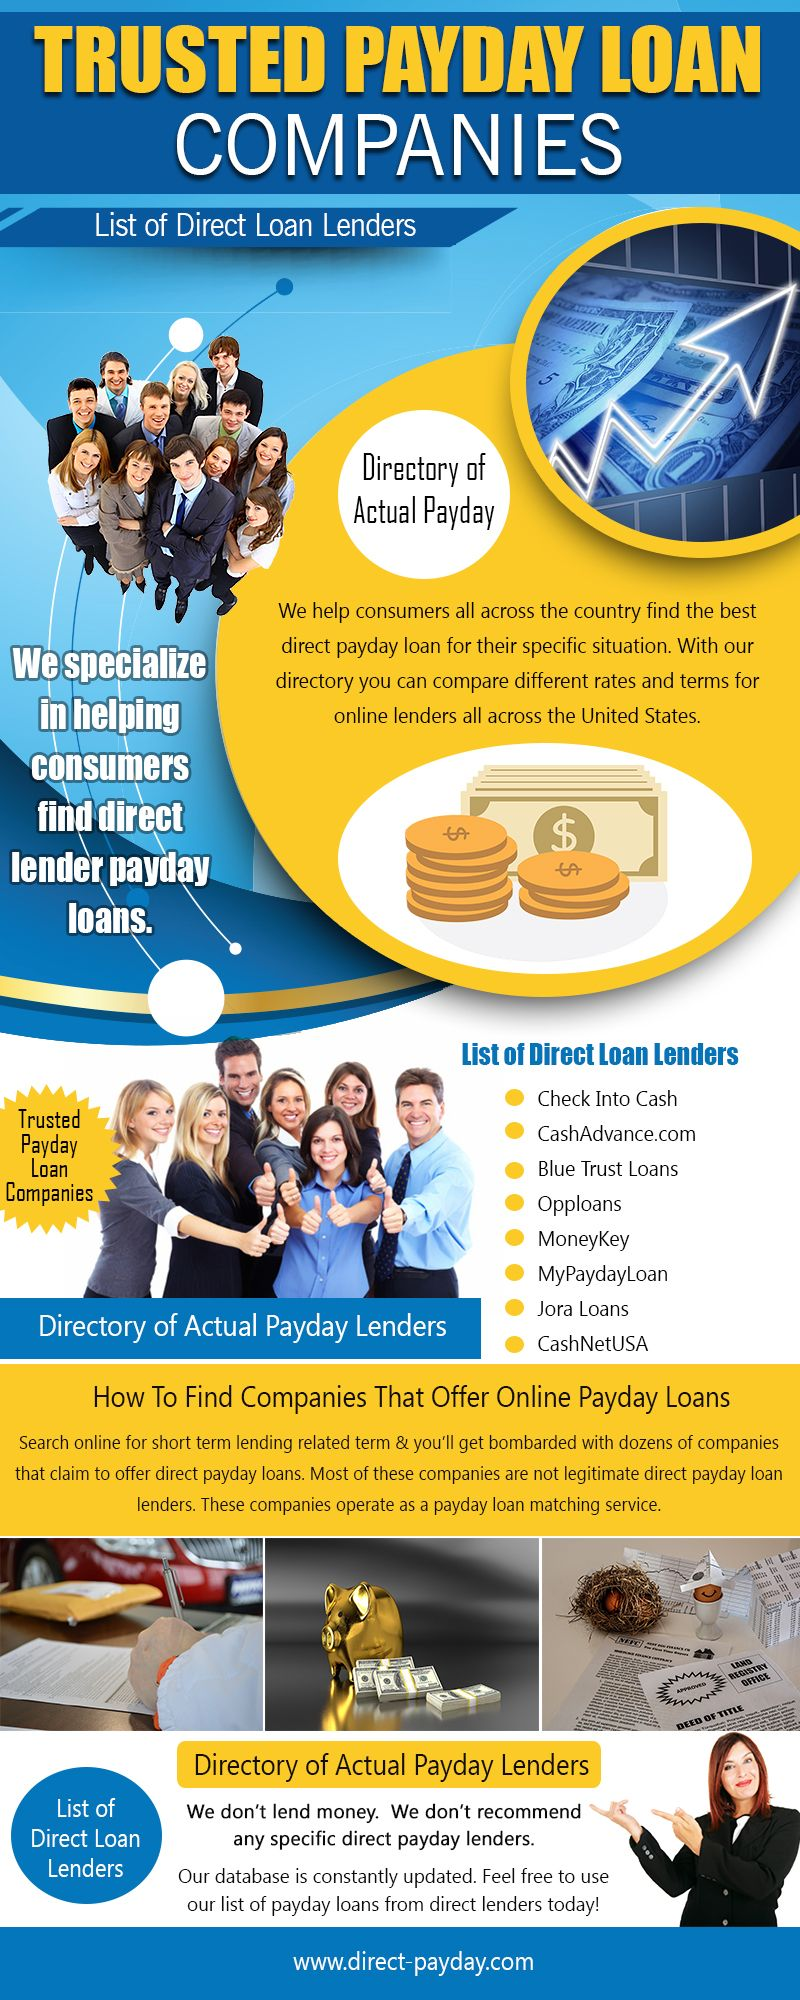 Pin On Trusted Payday Loan Companies